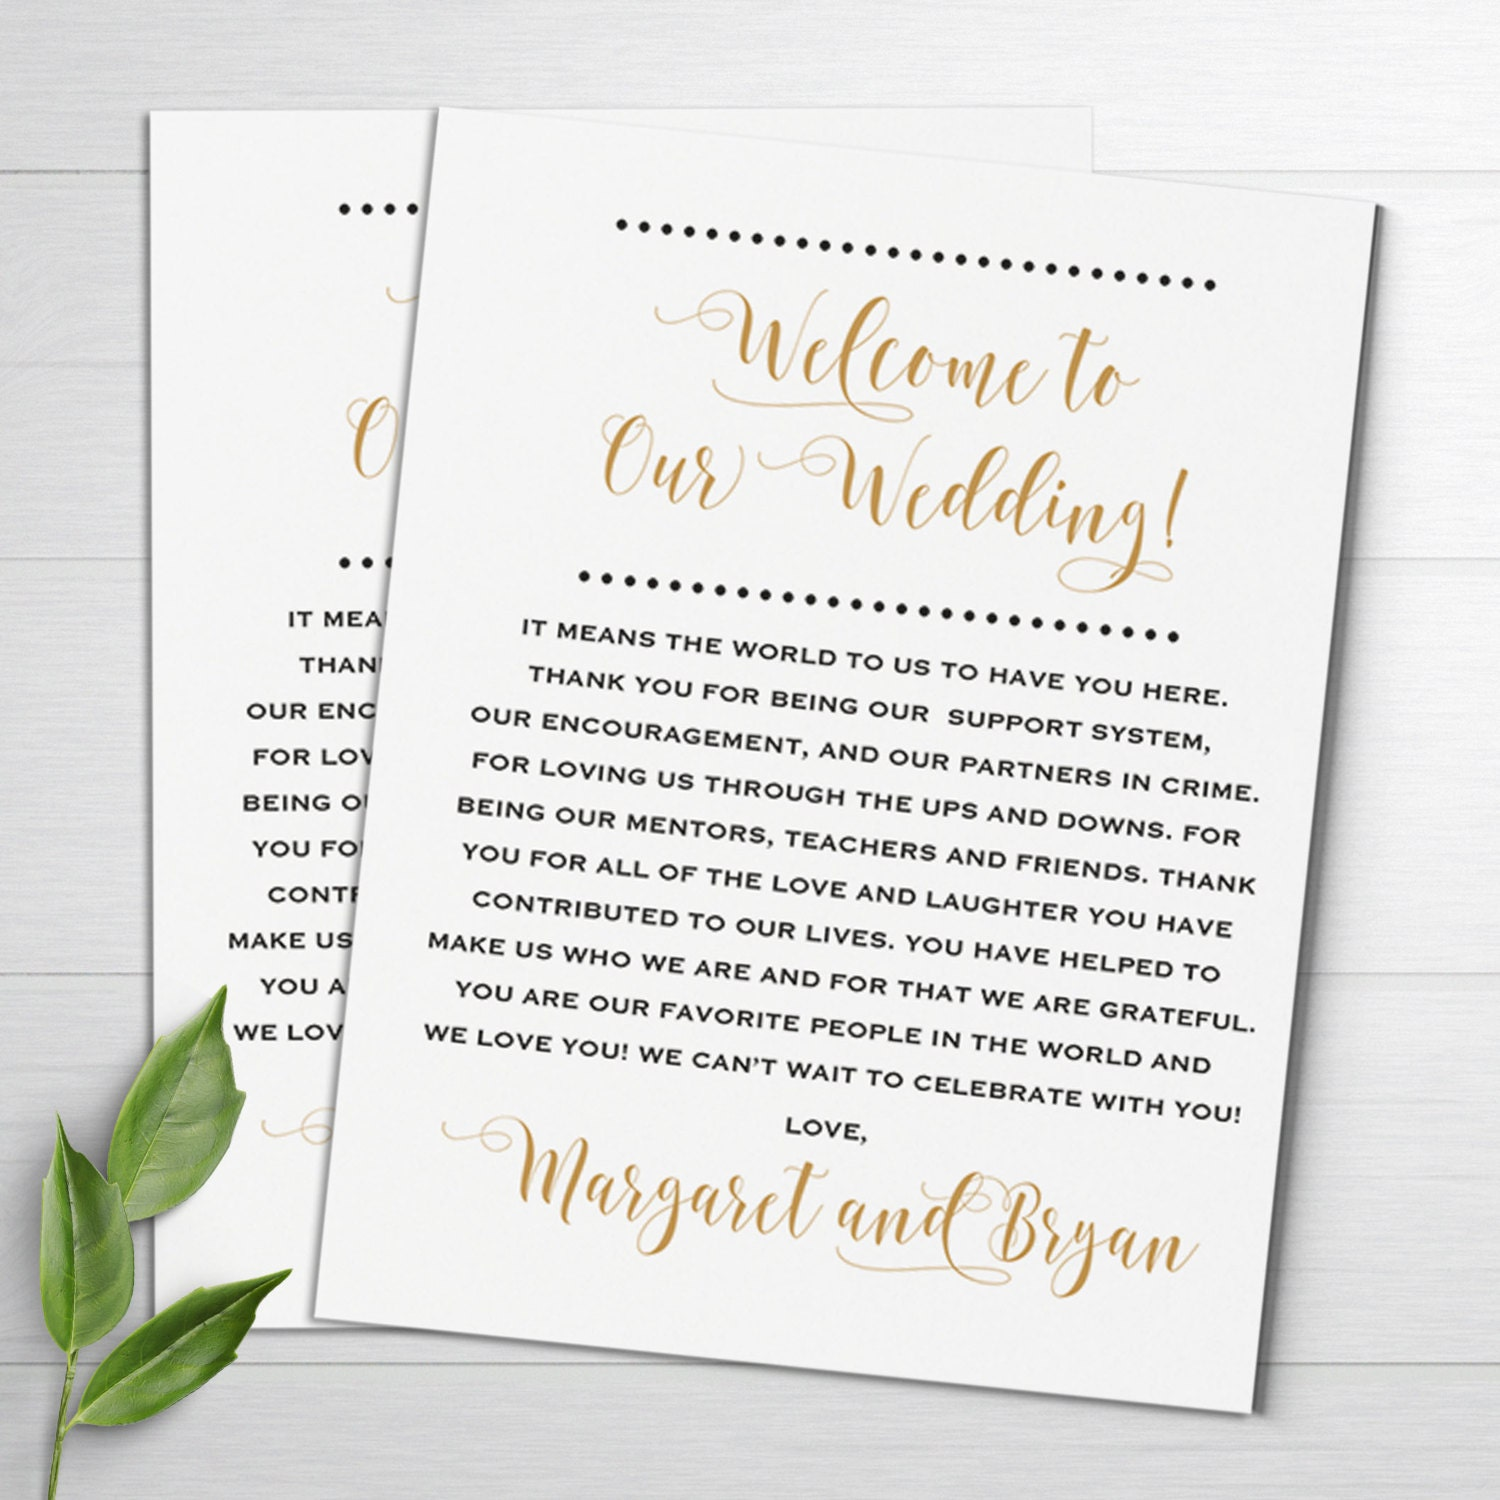 Wedding Notes: Wedding Welcome Notes Wedding Itinerary Welcome Letters